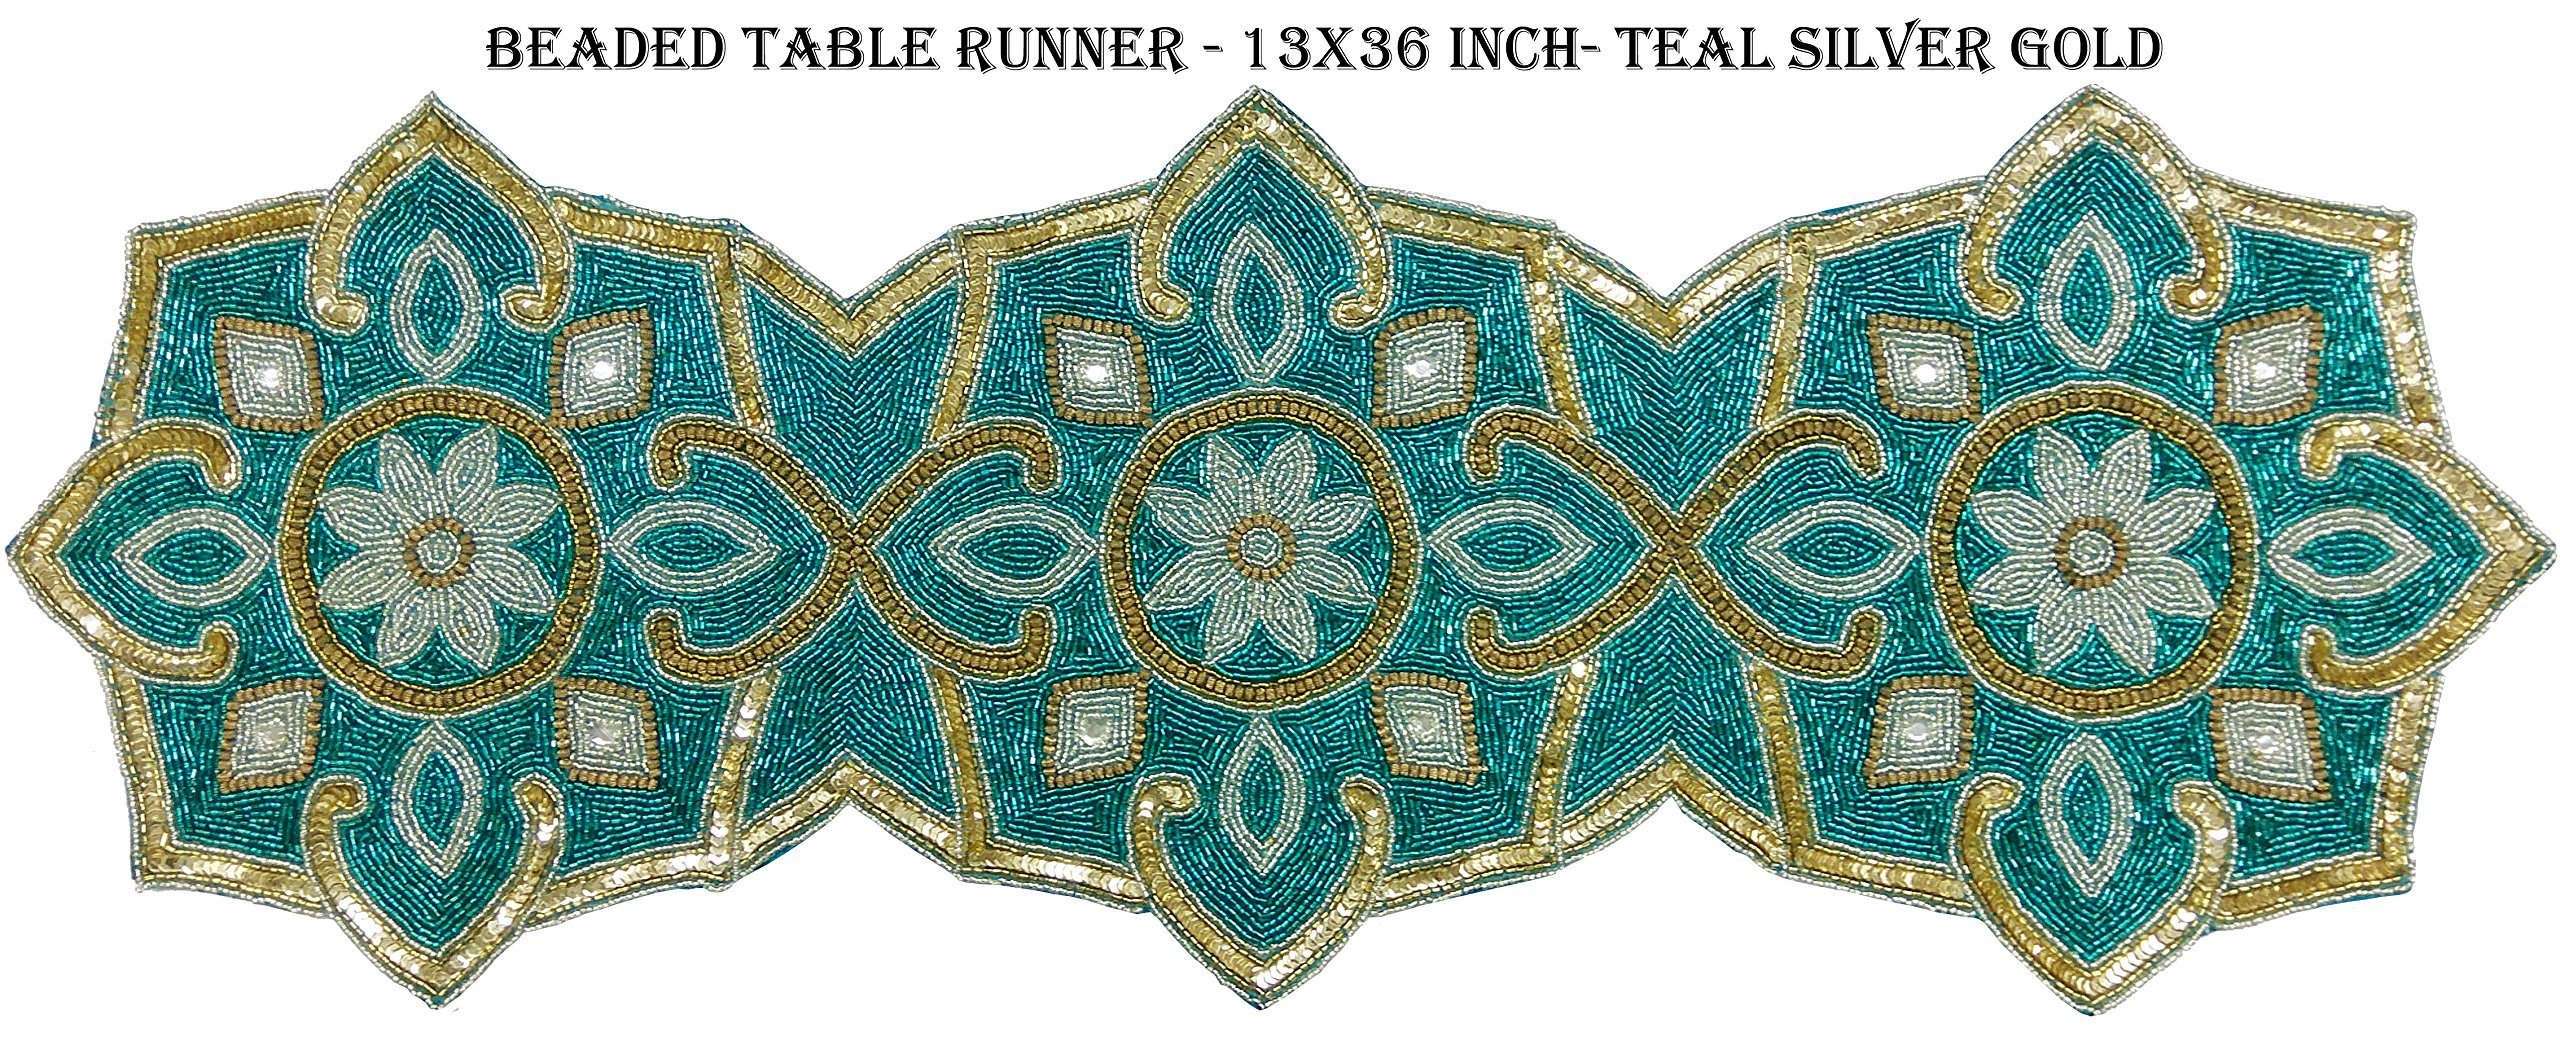 Linen Clubs Hand Made Beaded Table Runner 13x36 Inch in Teal Gold silver Combo colors,produced by skilled village Artisans in India - A Beautiful Complements to Dinner Table Decor Offered by